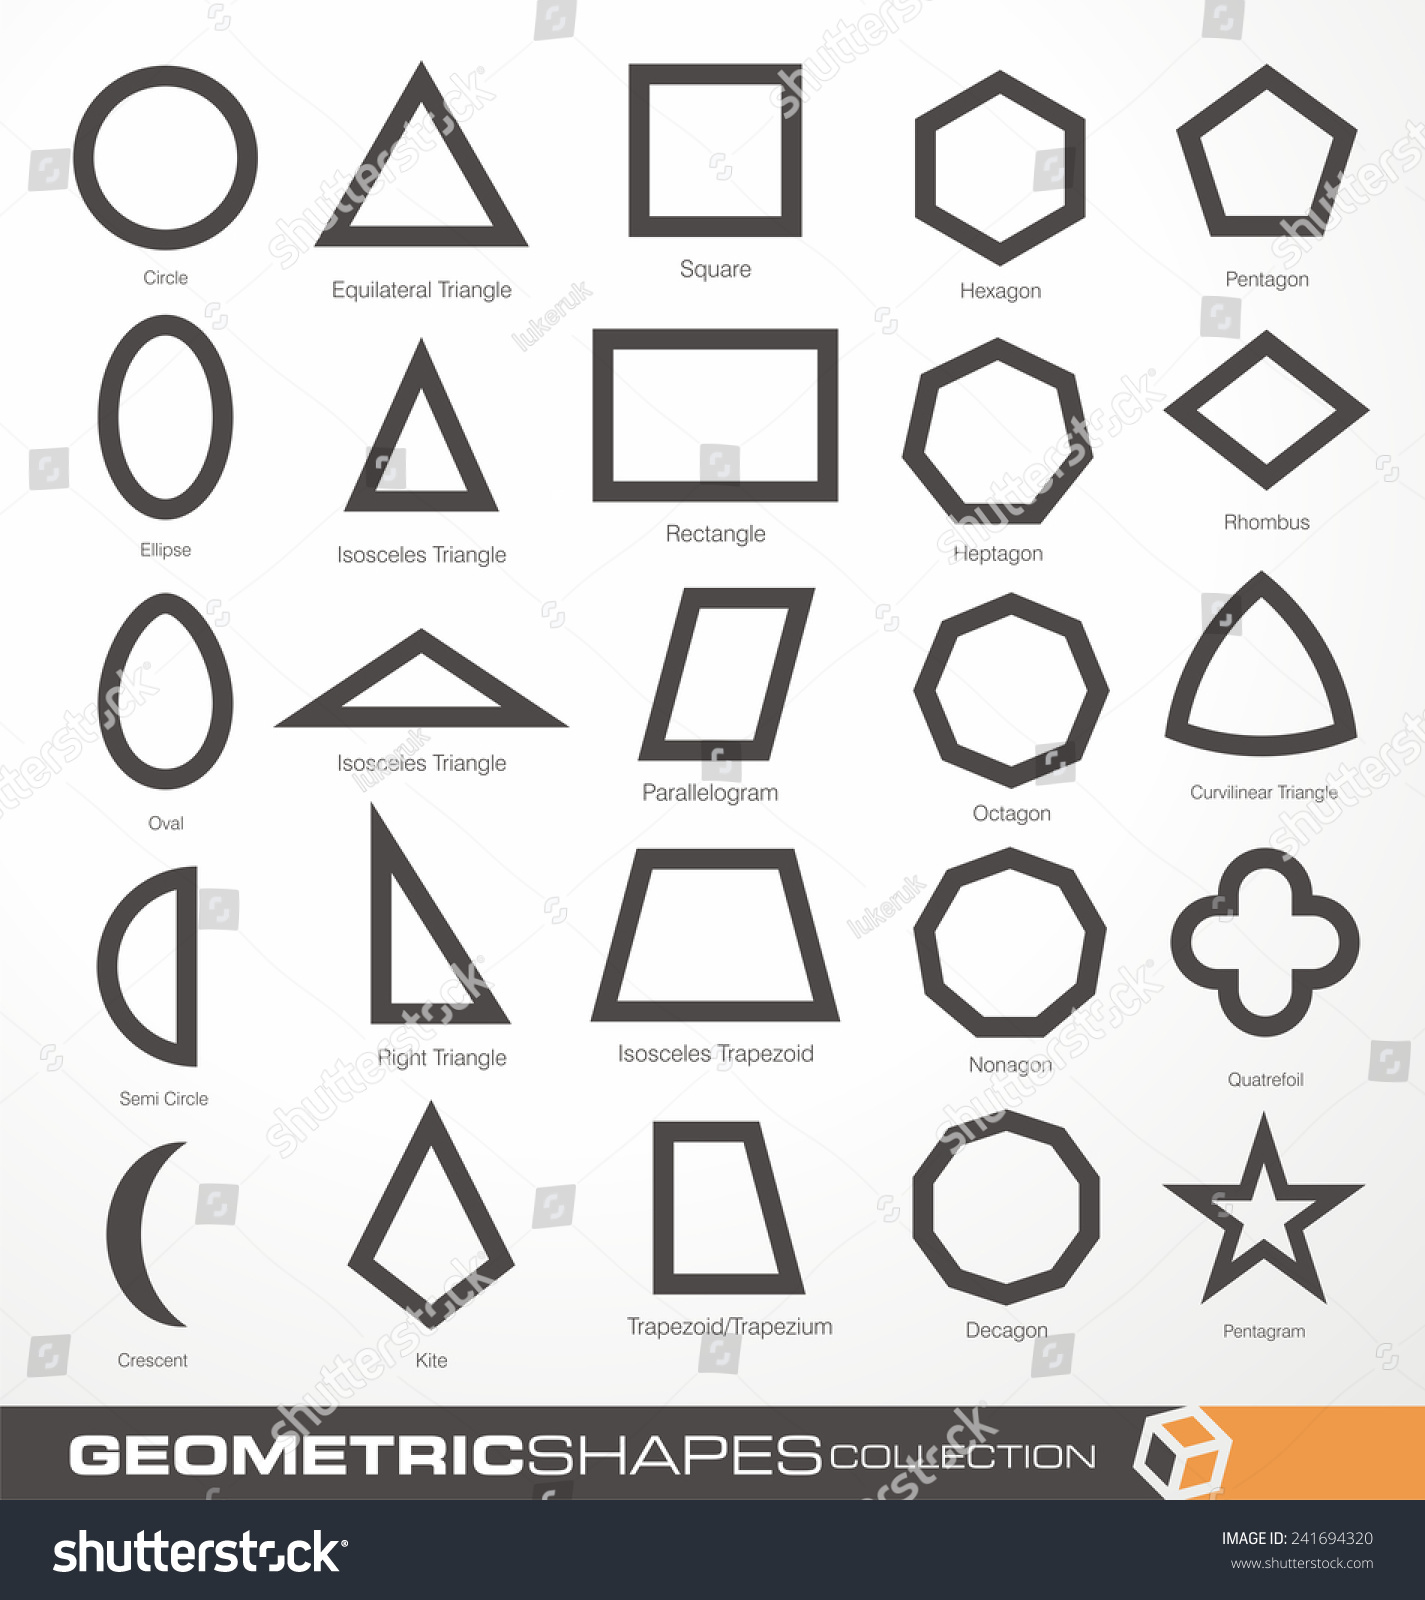 Set Of Geometric Shapes Basic Geometry Objects Vector